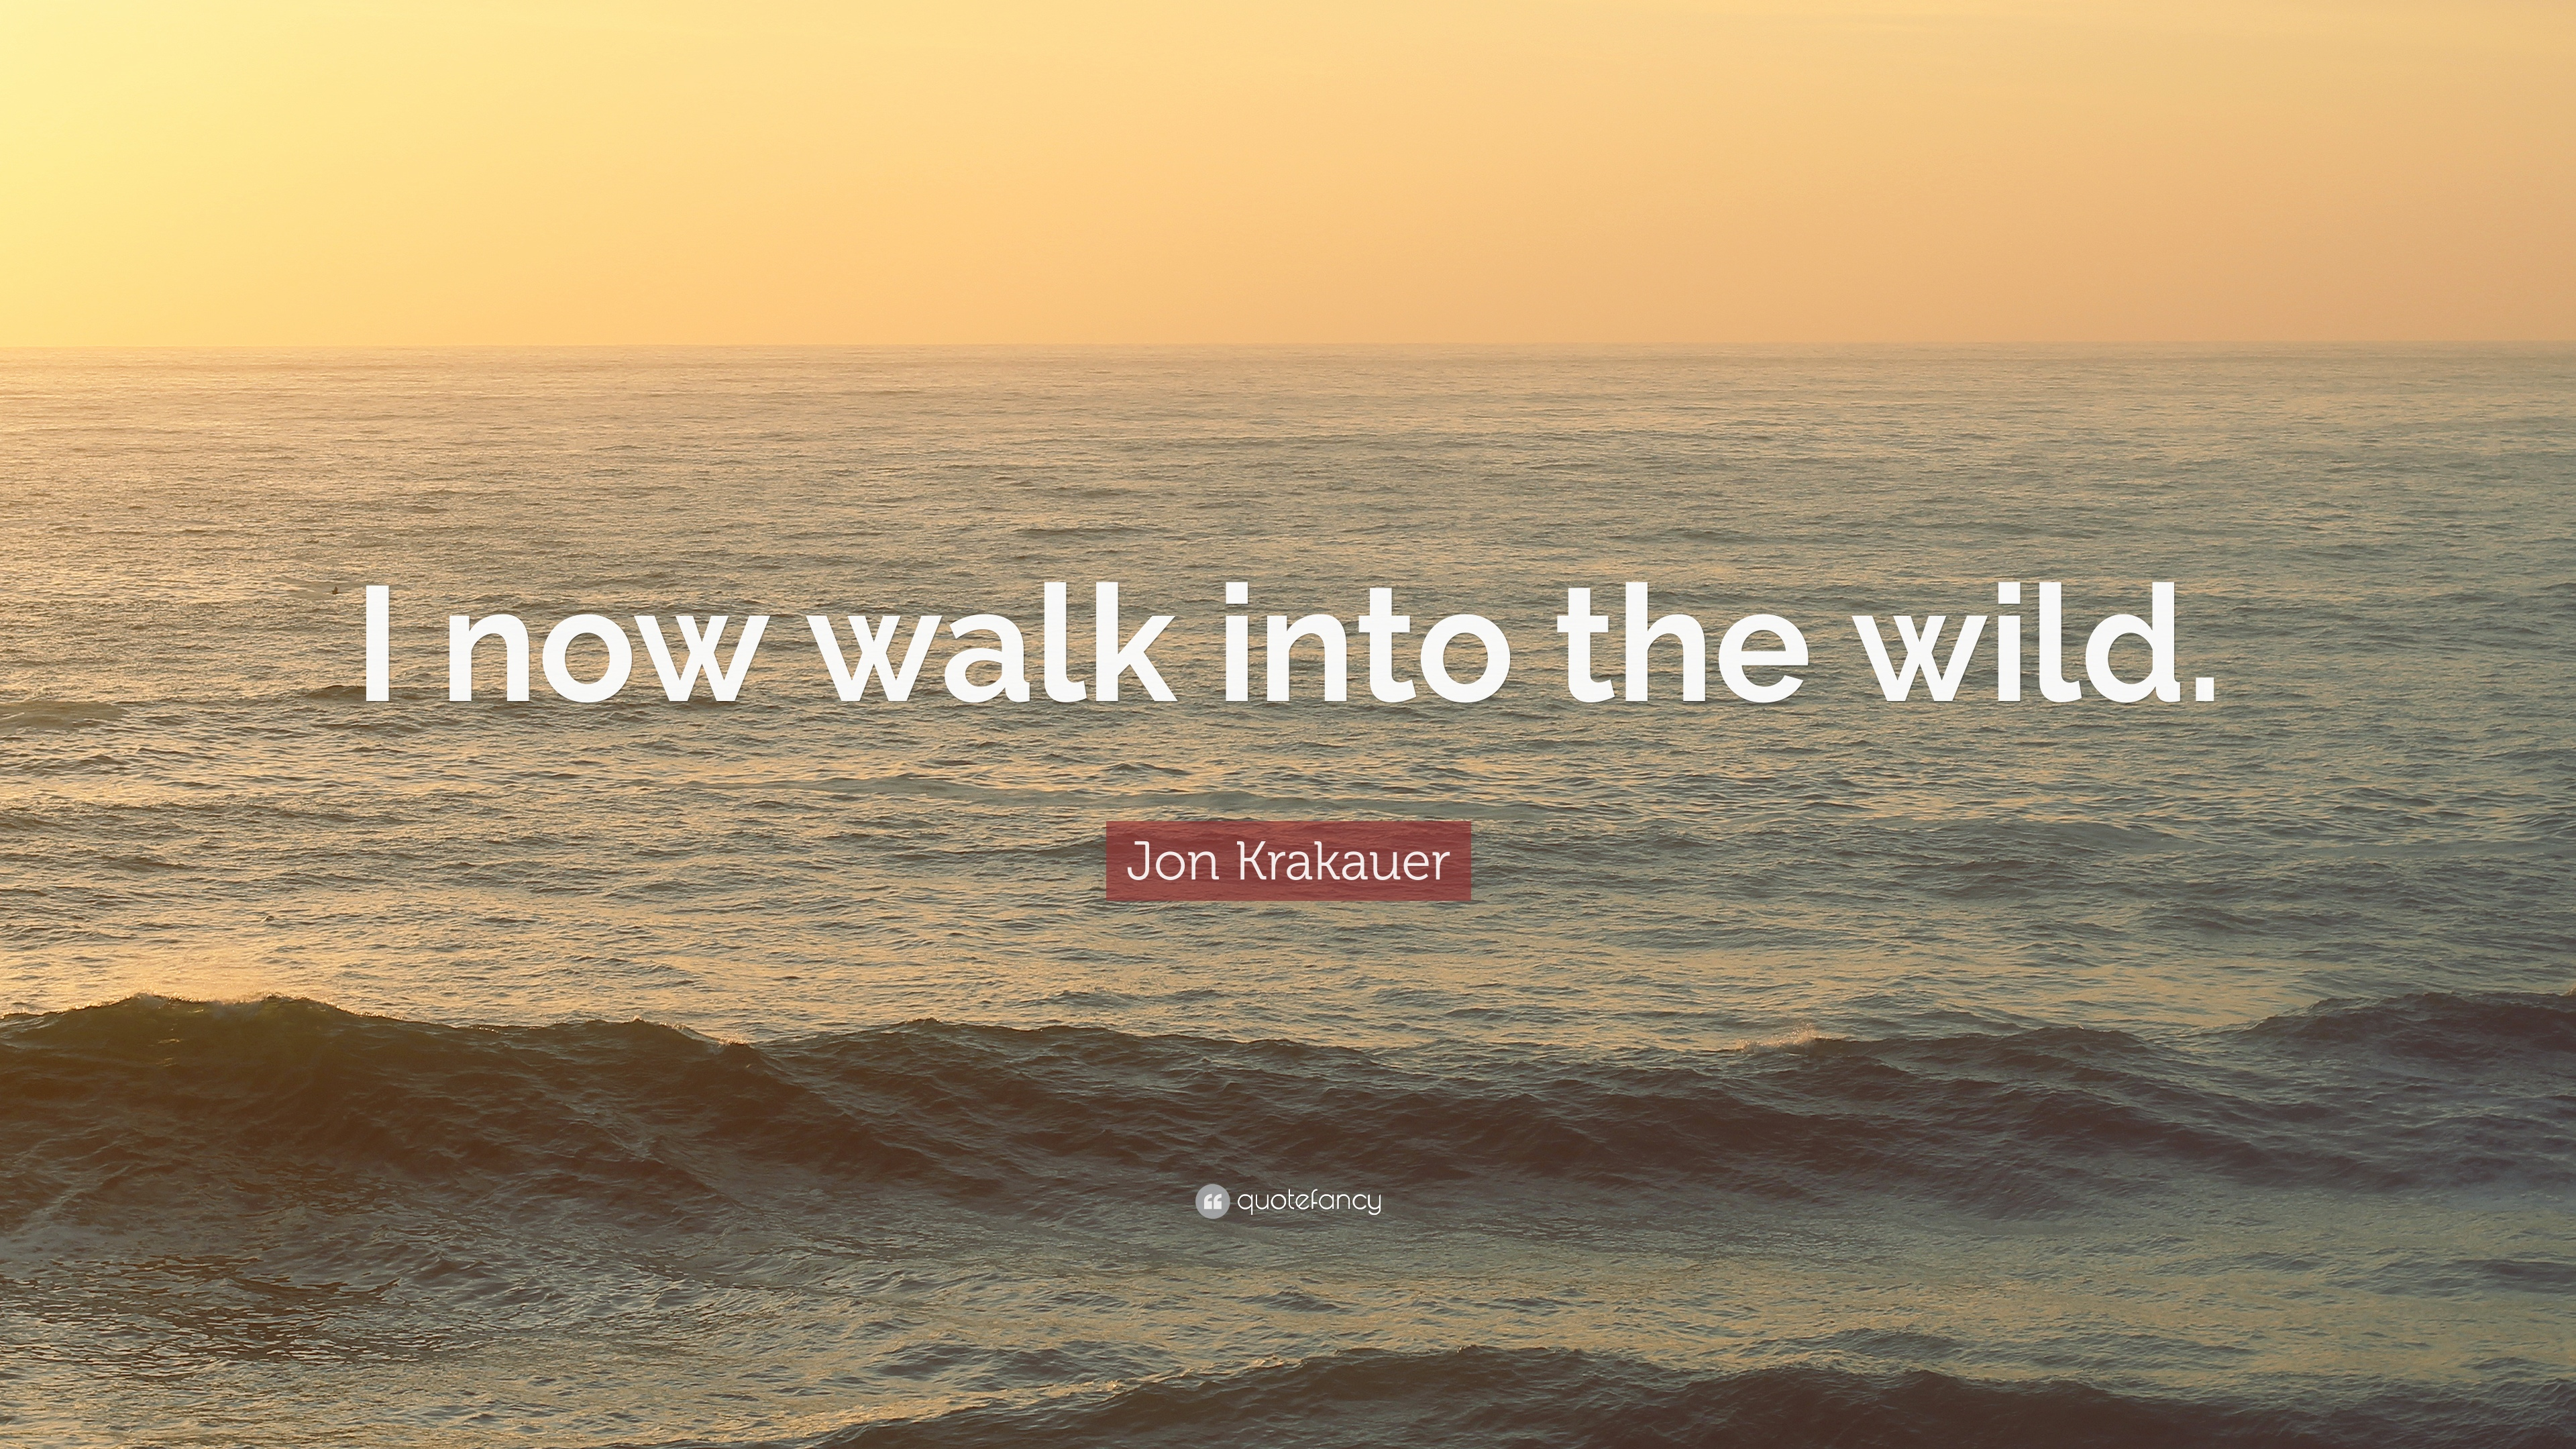 "Into The Wild Quotes Inspiration Jon Krakauer Quote ""I Now Walk Into The Wild."" 12 Wallpapers"